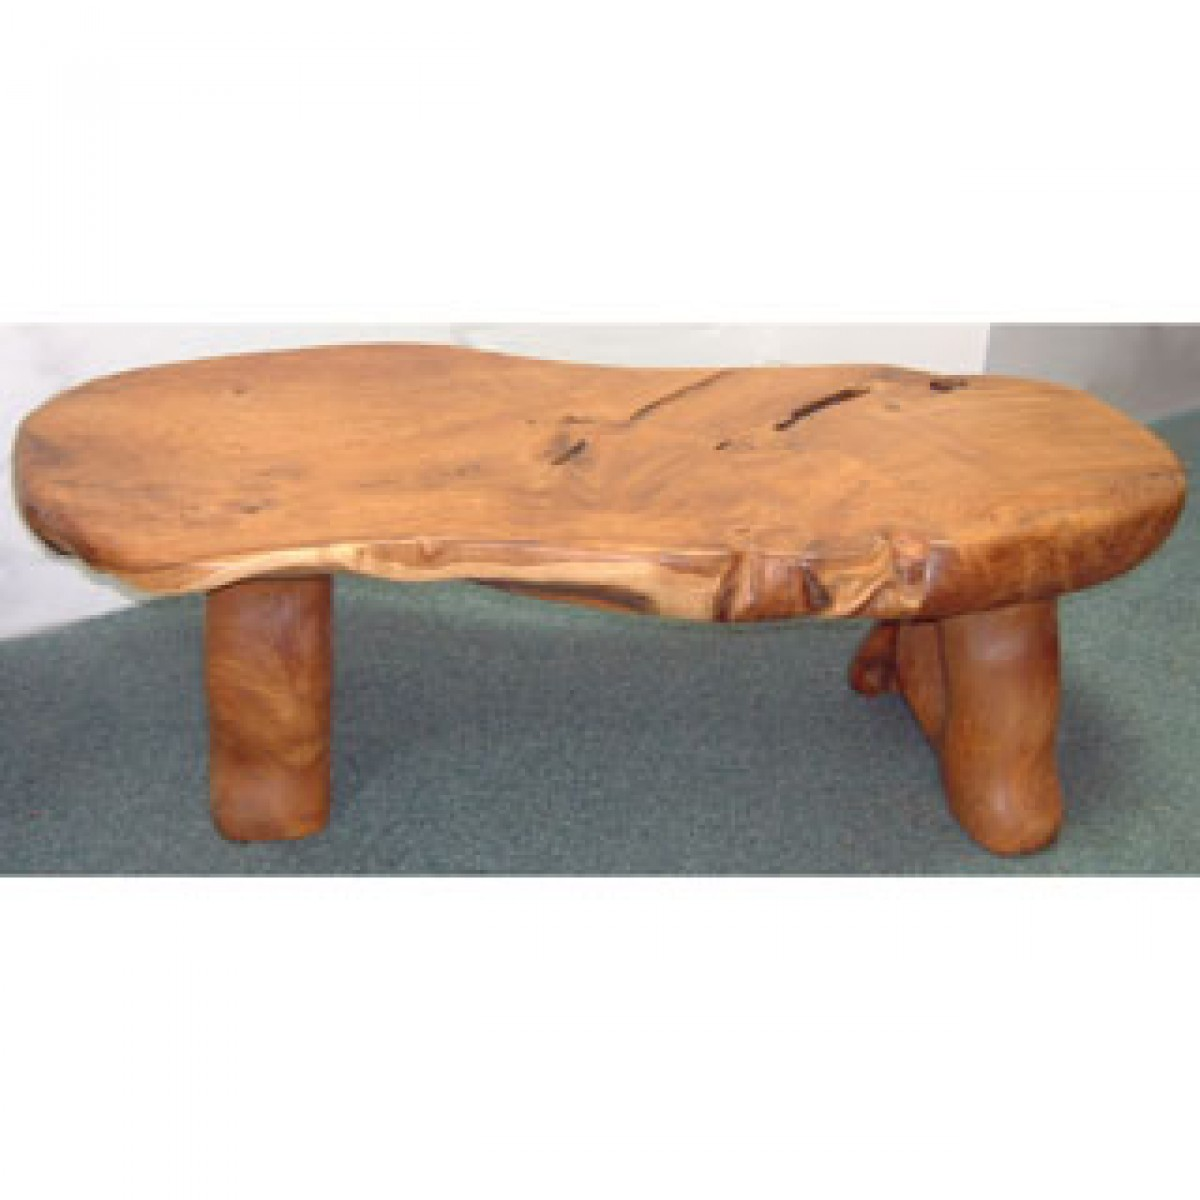 Teak Coffee Table Rustic Teak Coffee Table Images Sell Ideas For You Wood Furnish Natural Brown (View 10 of 10)